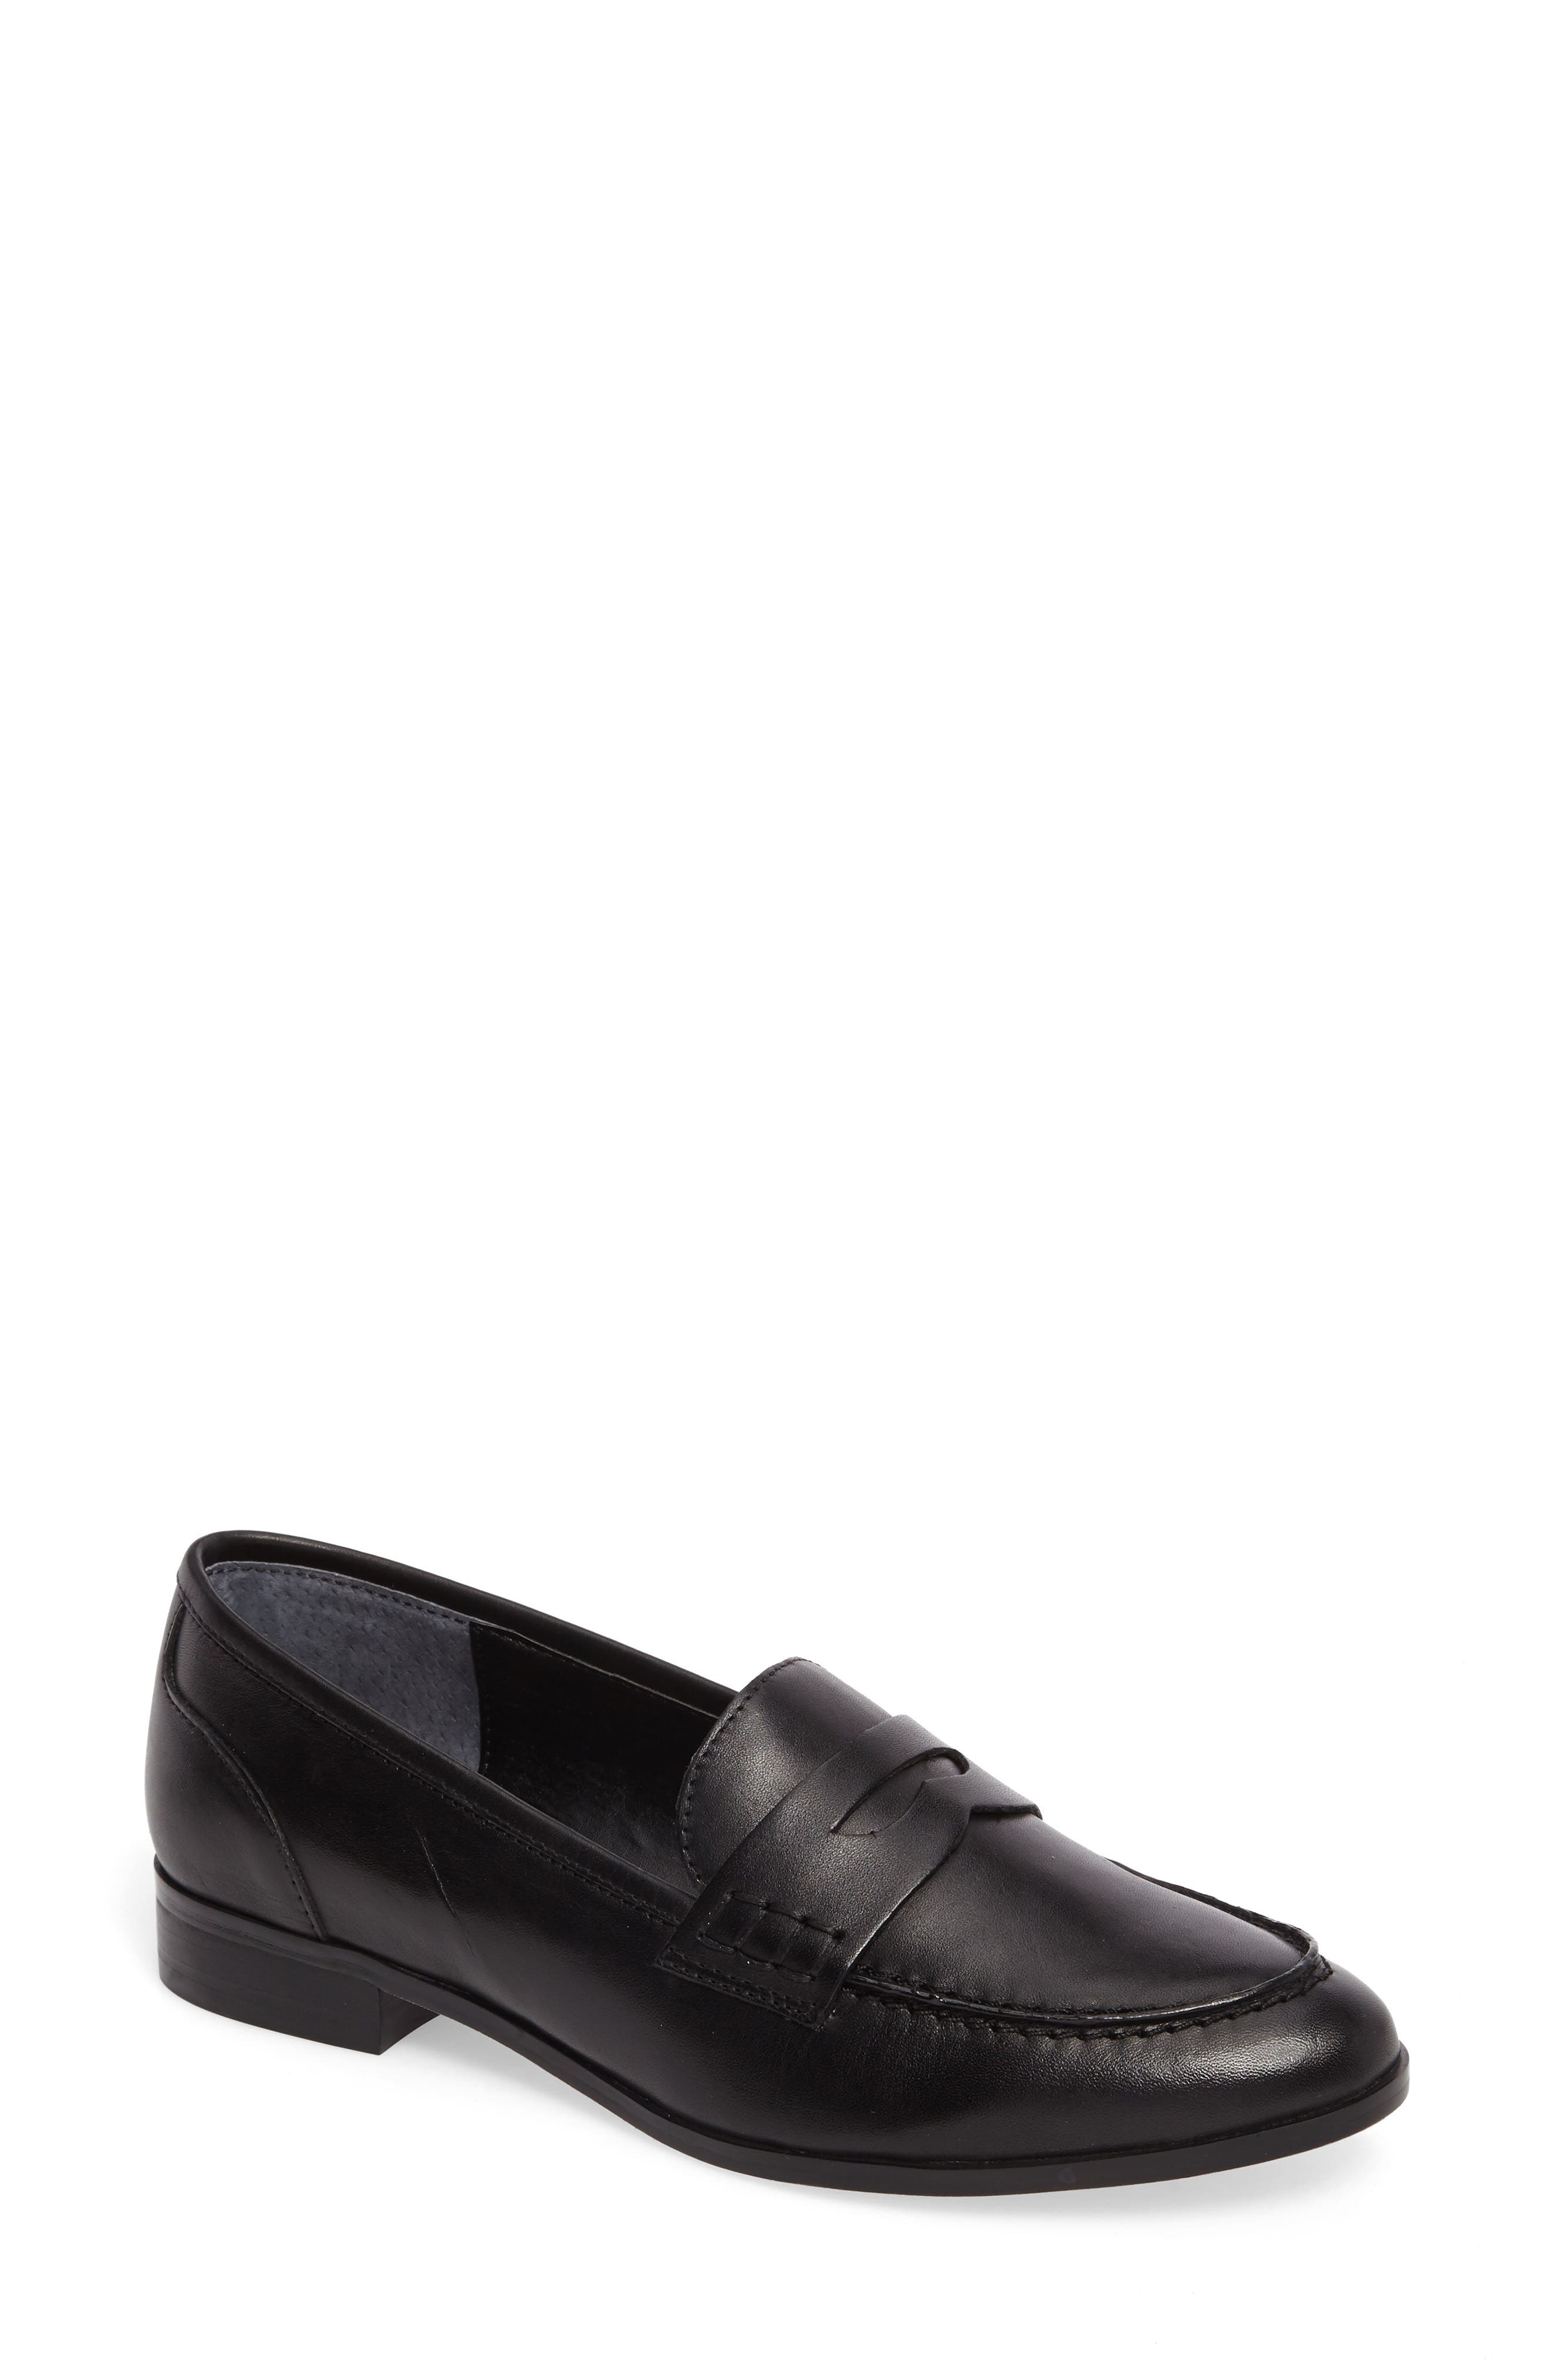 Georgie Penny Loafer,                         Main,                         color,